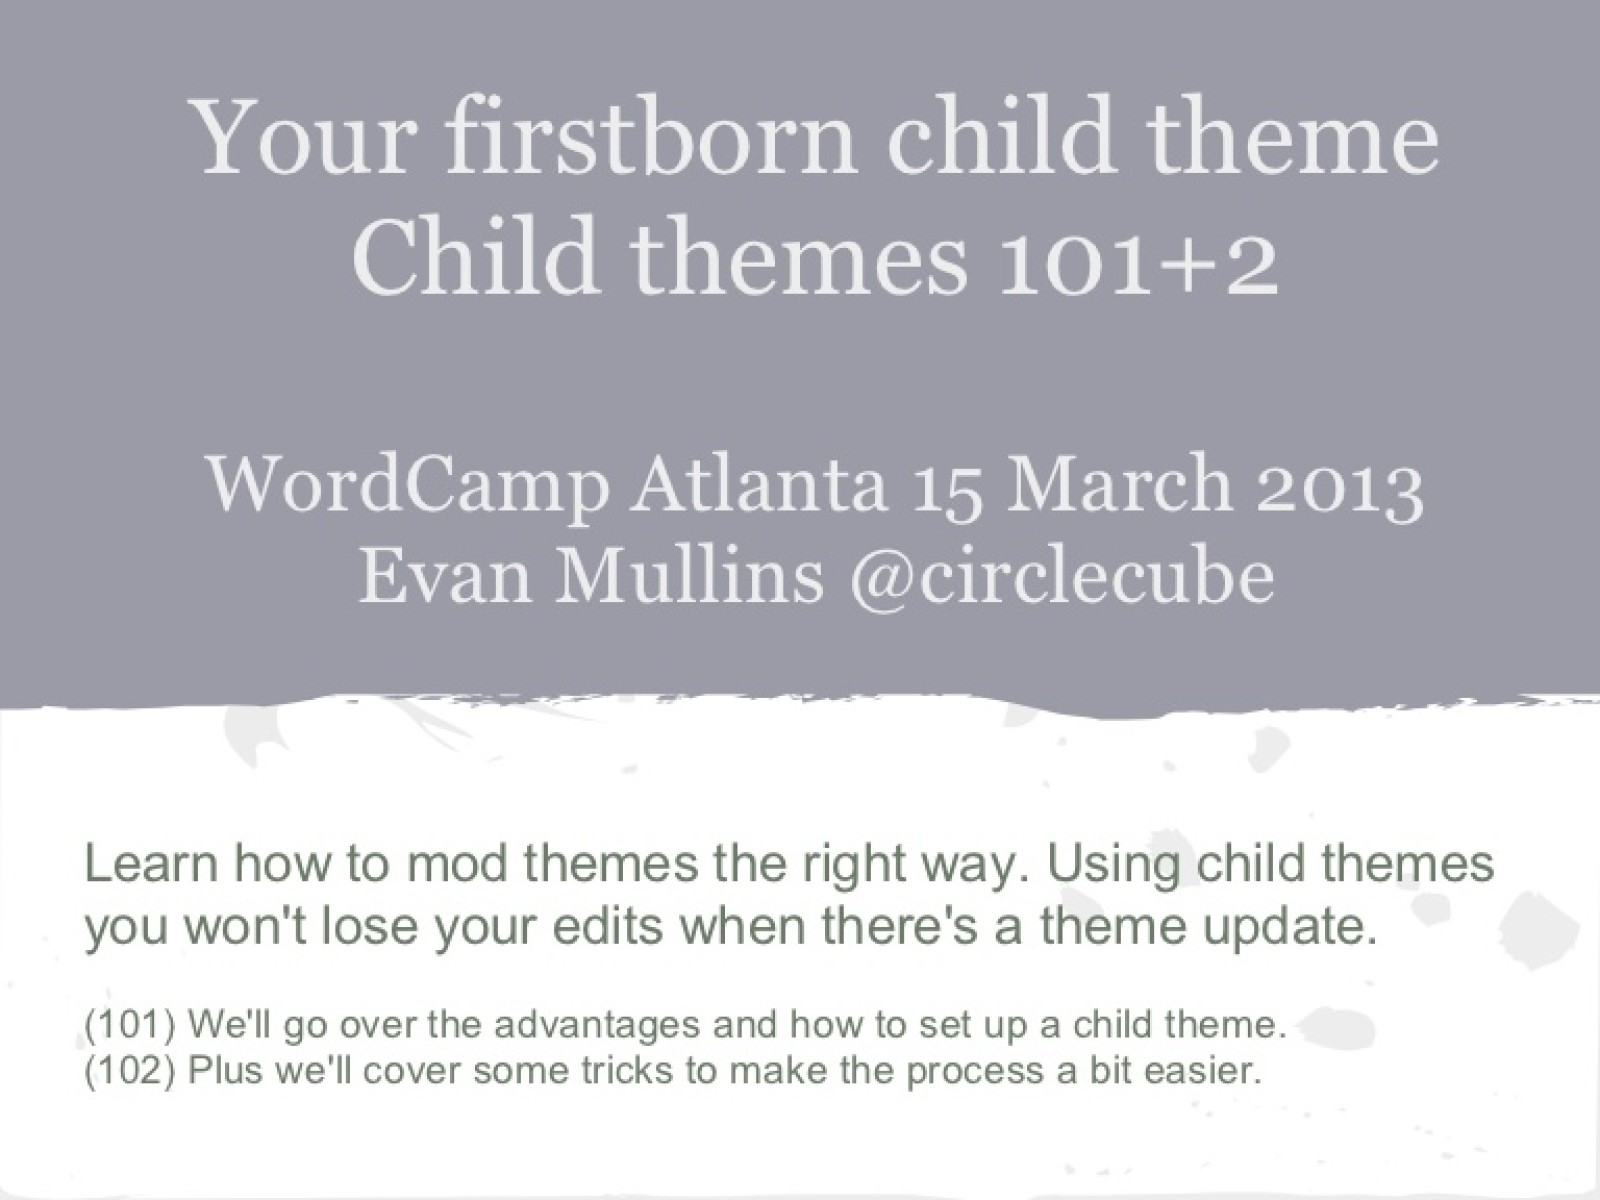 Your firstborn child theme. Child themes 101+2